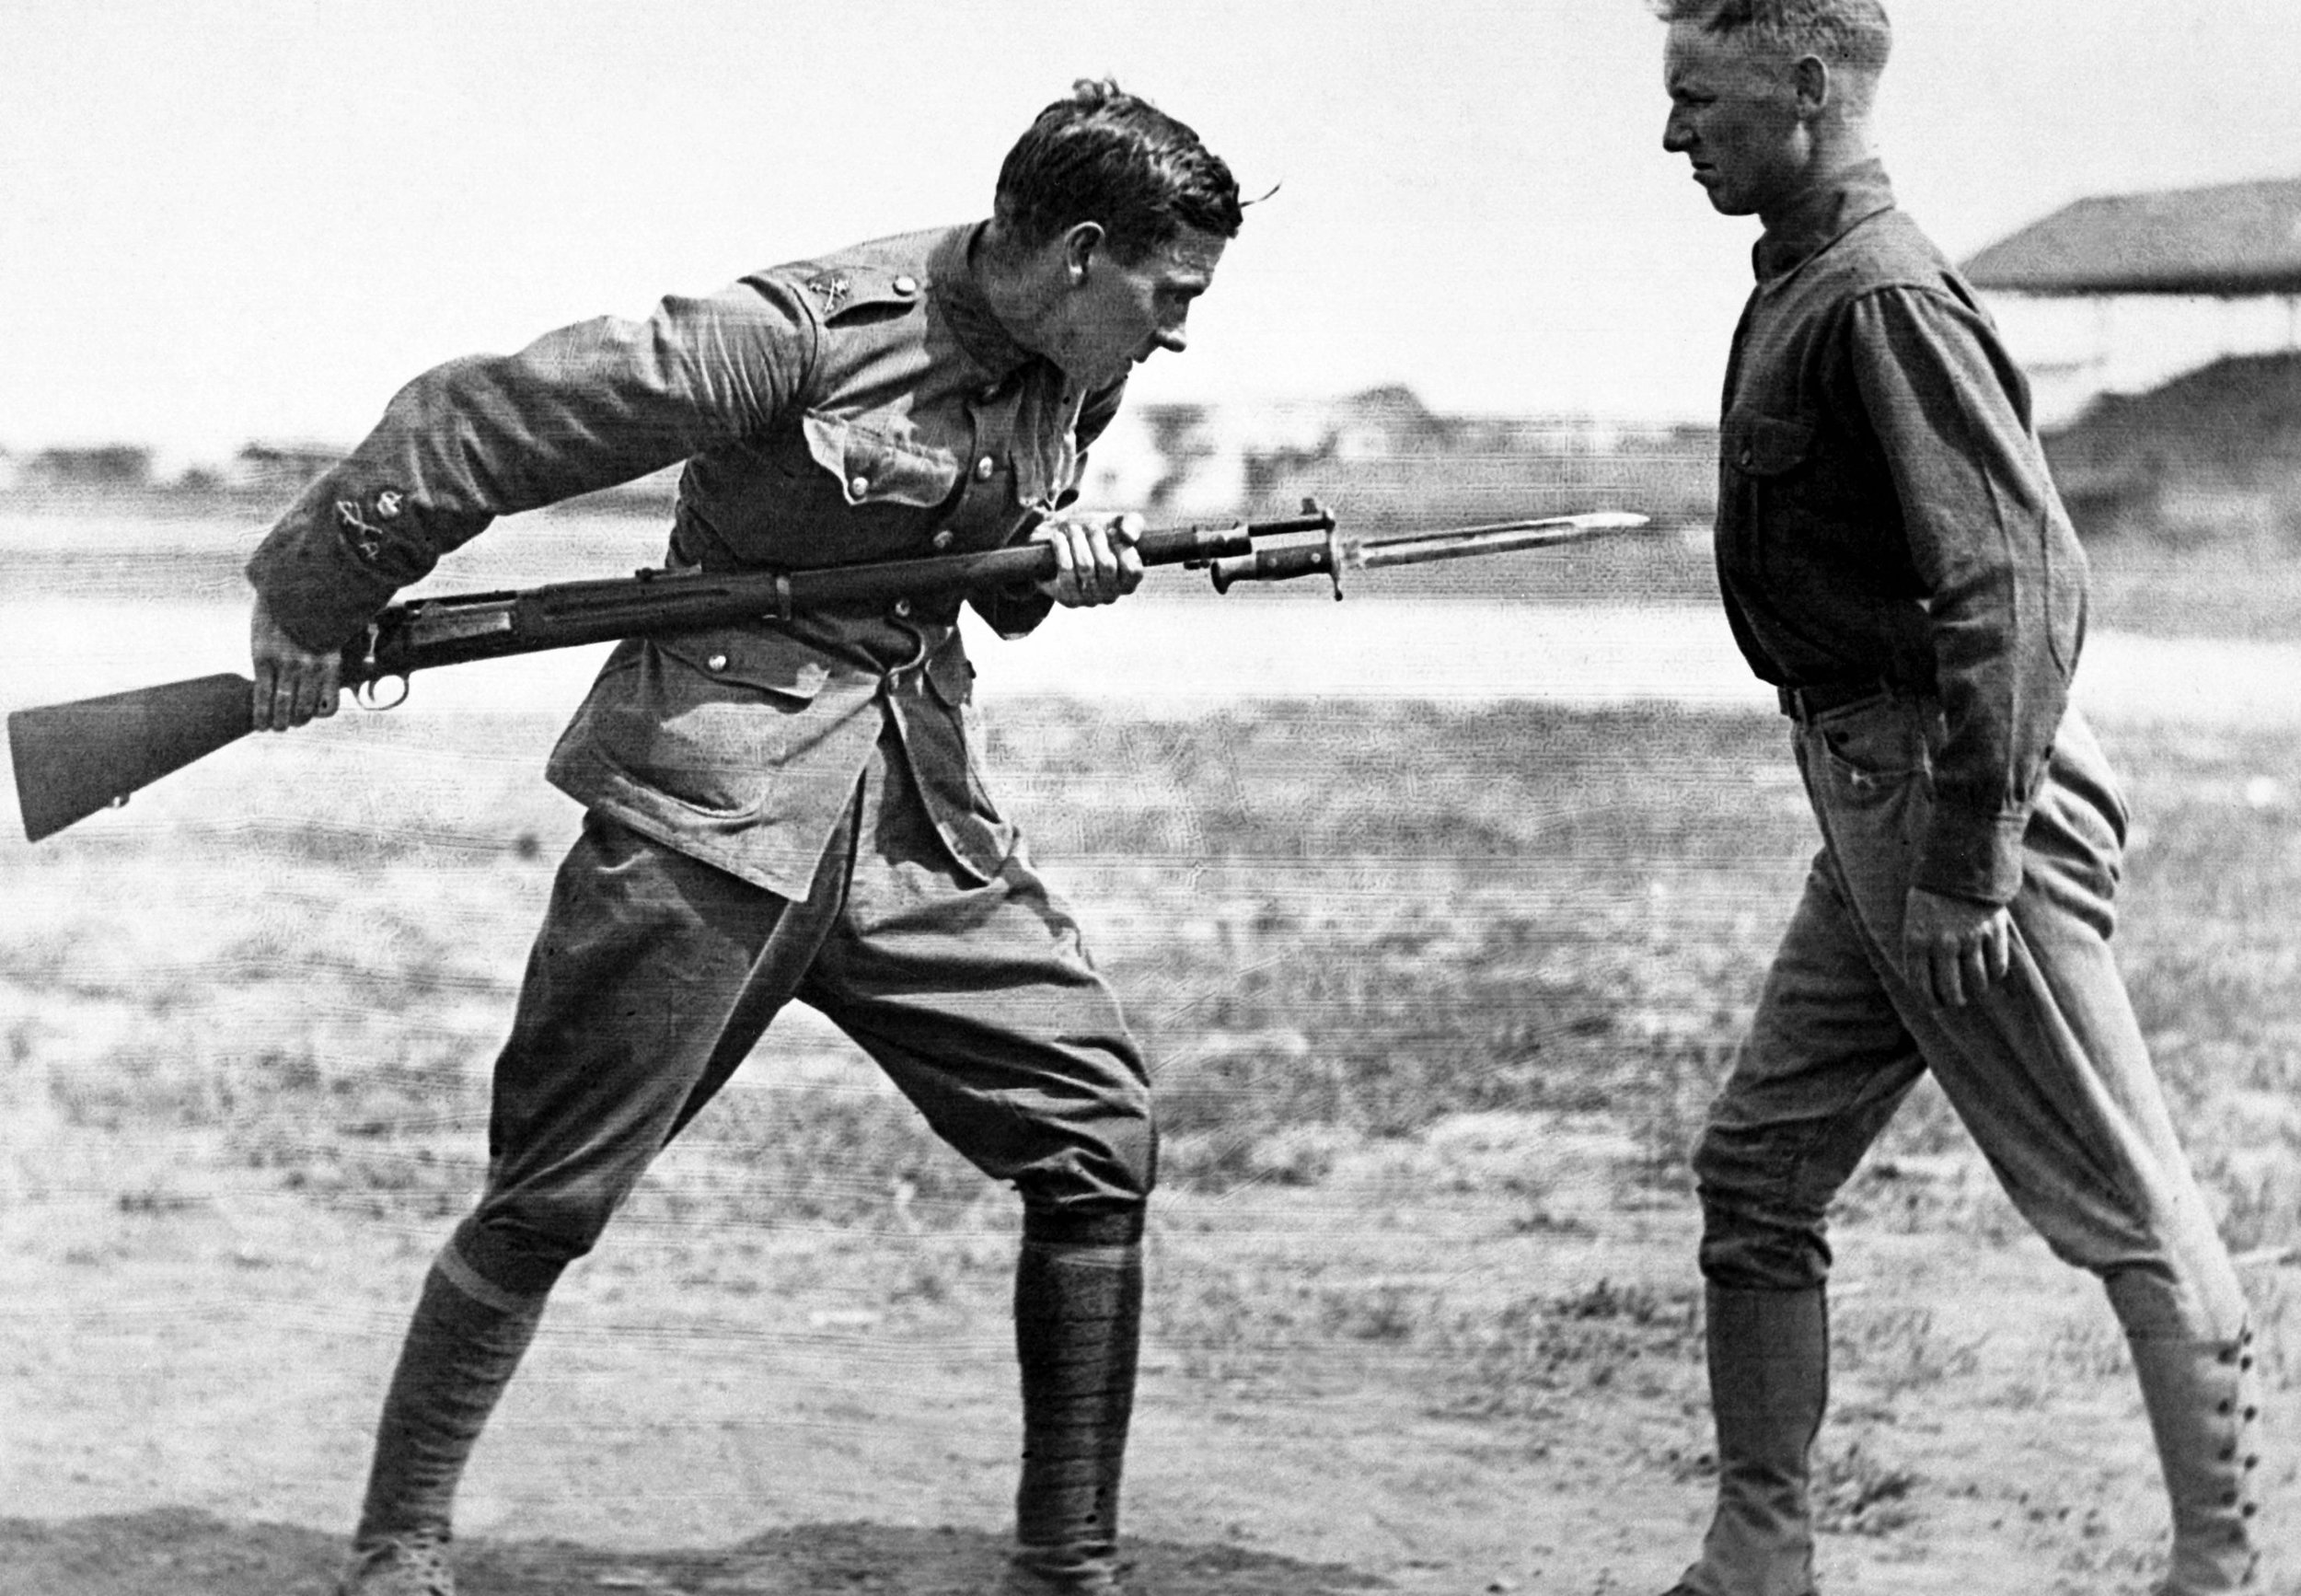 """Bayonet training was a significant part of a soldier's preparation. But as Thomas Dinesen points out in """"Merry Hell,"""" very little training beyond basic weapon instruction had trickled down from the experiences of his fellow Highlanders at Hill 70 and Vimy. Even once in Britain, they learned very little beyond preliminaries of trench warfare. In Dinesen's case, he would receive the Victoria Cross for his agility with a bayonet that he learned at the front."""